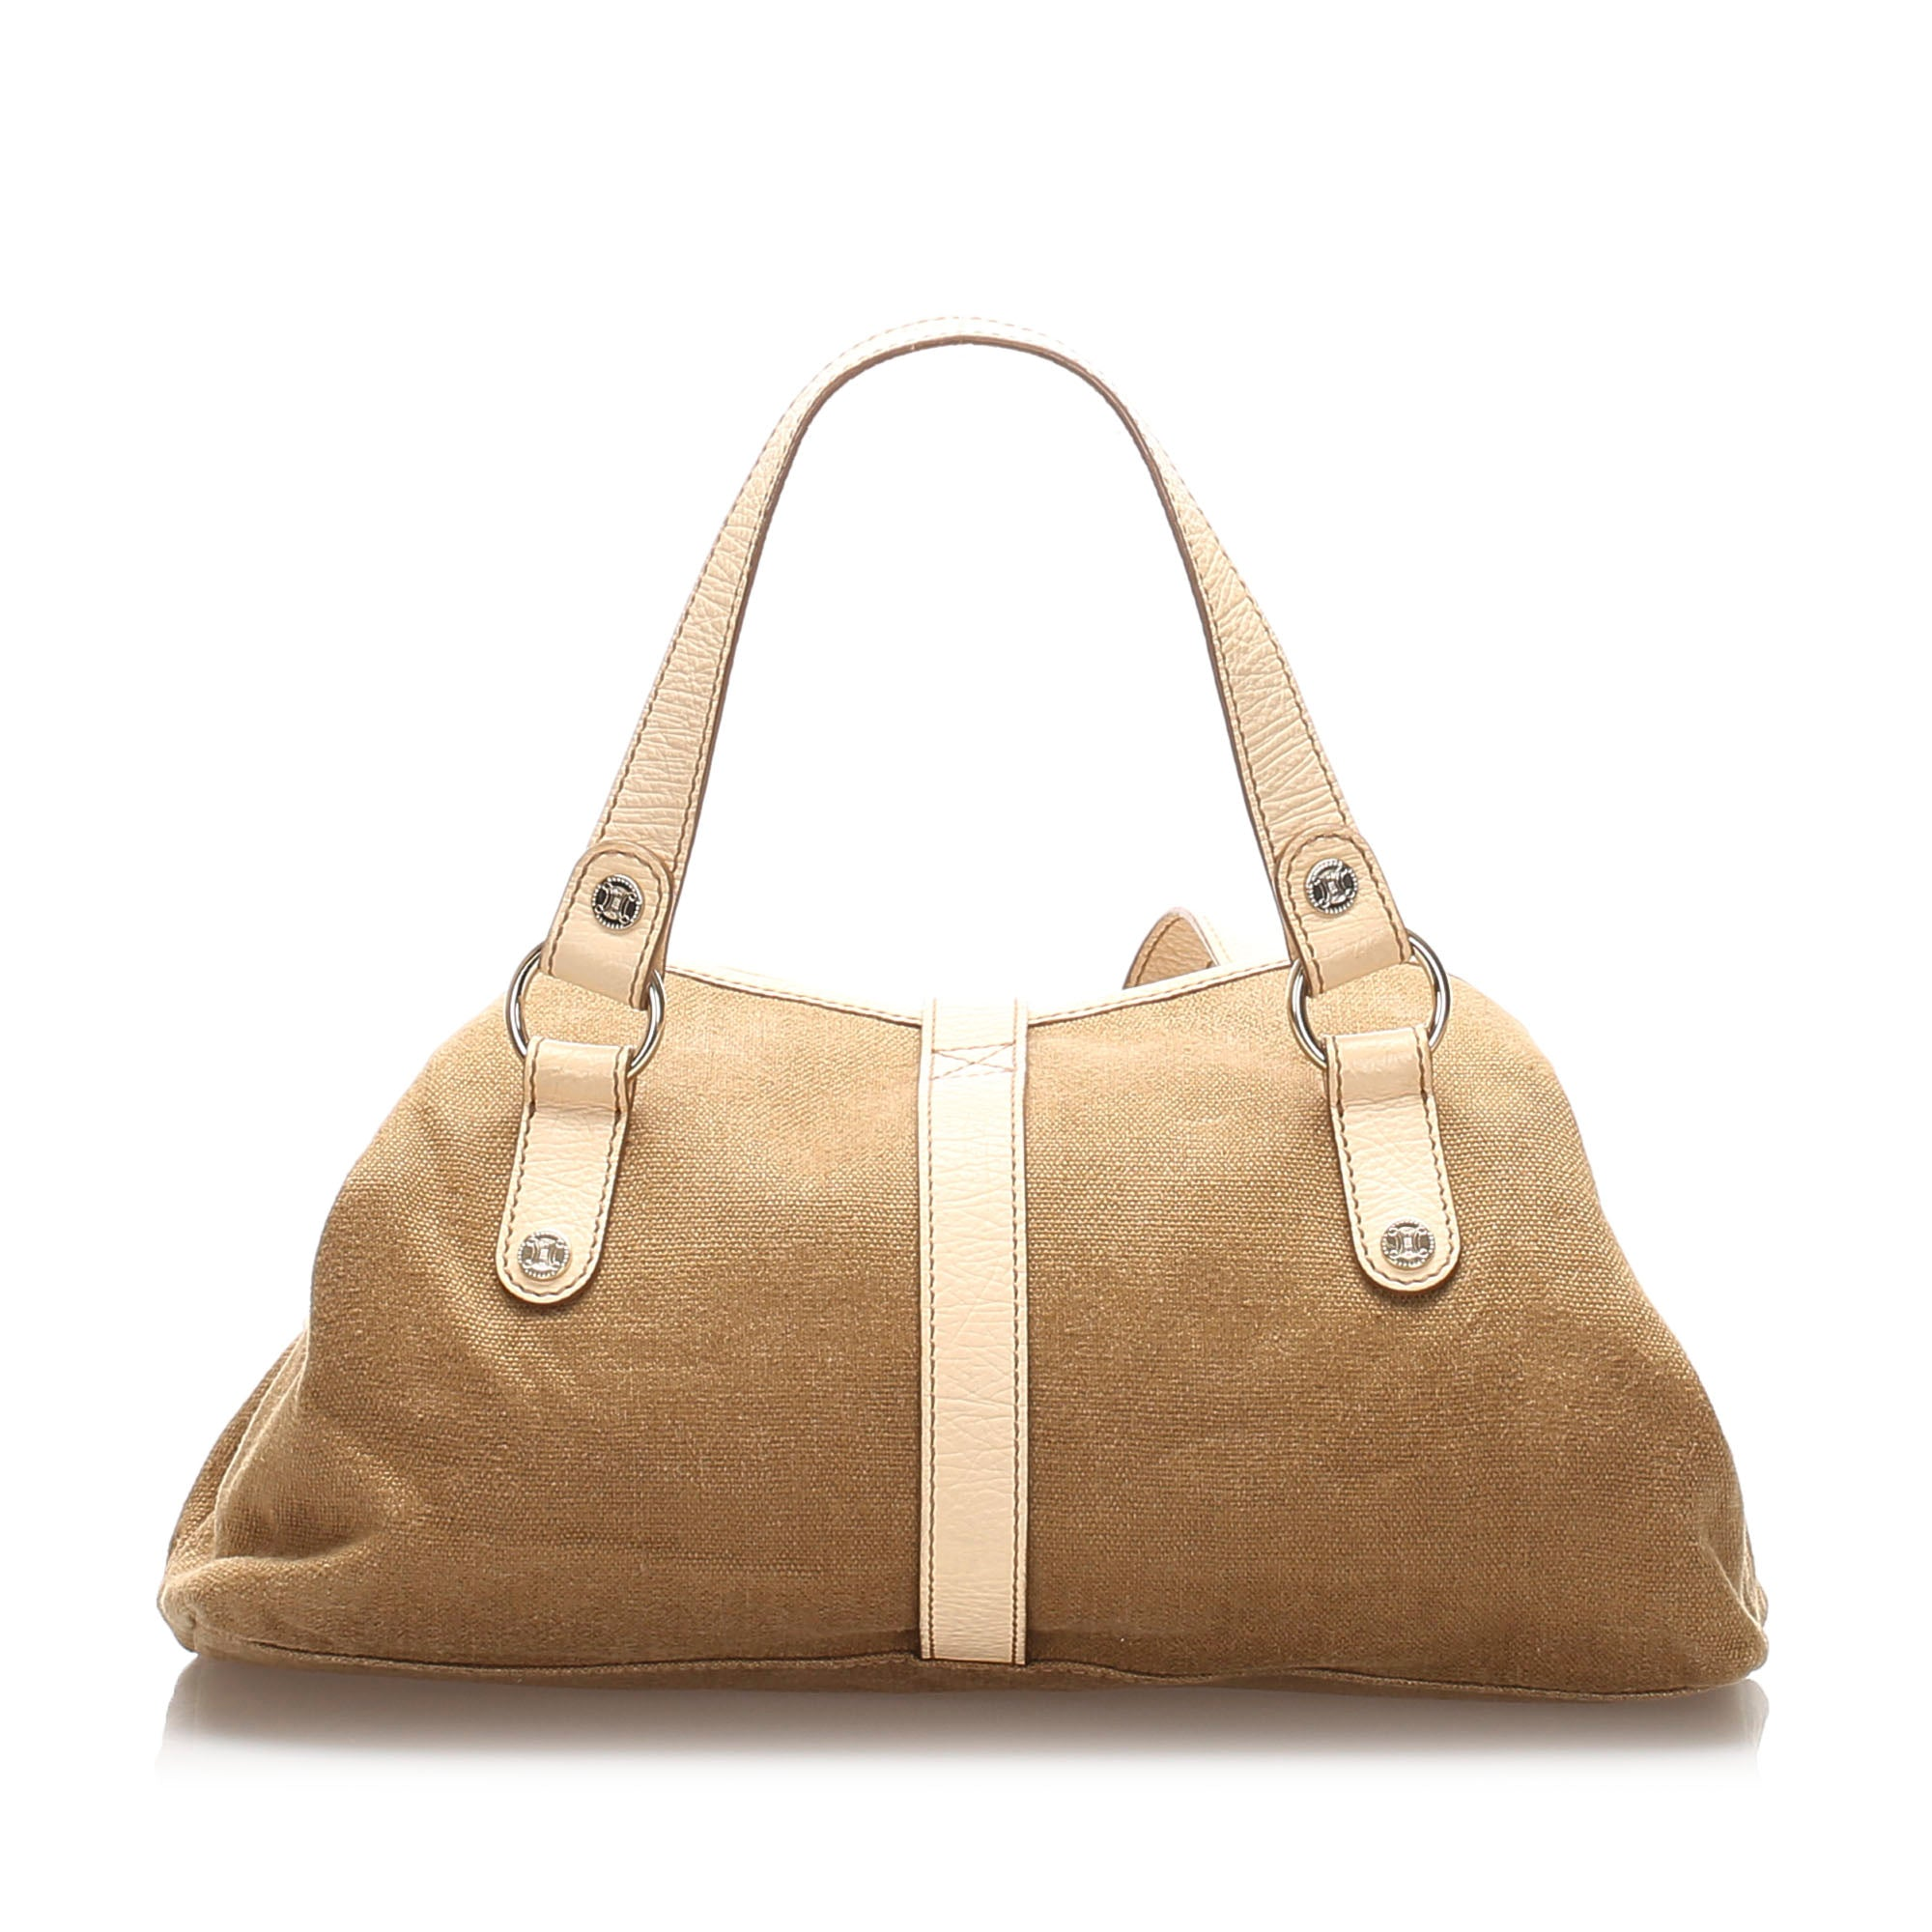 Celine Brown Canvas Tote Bag